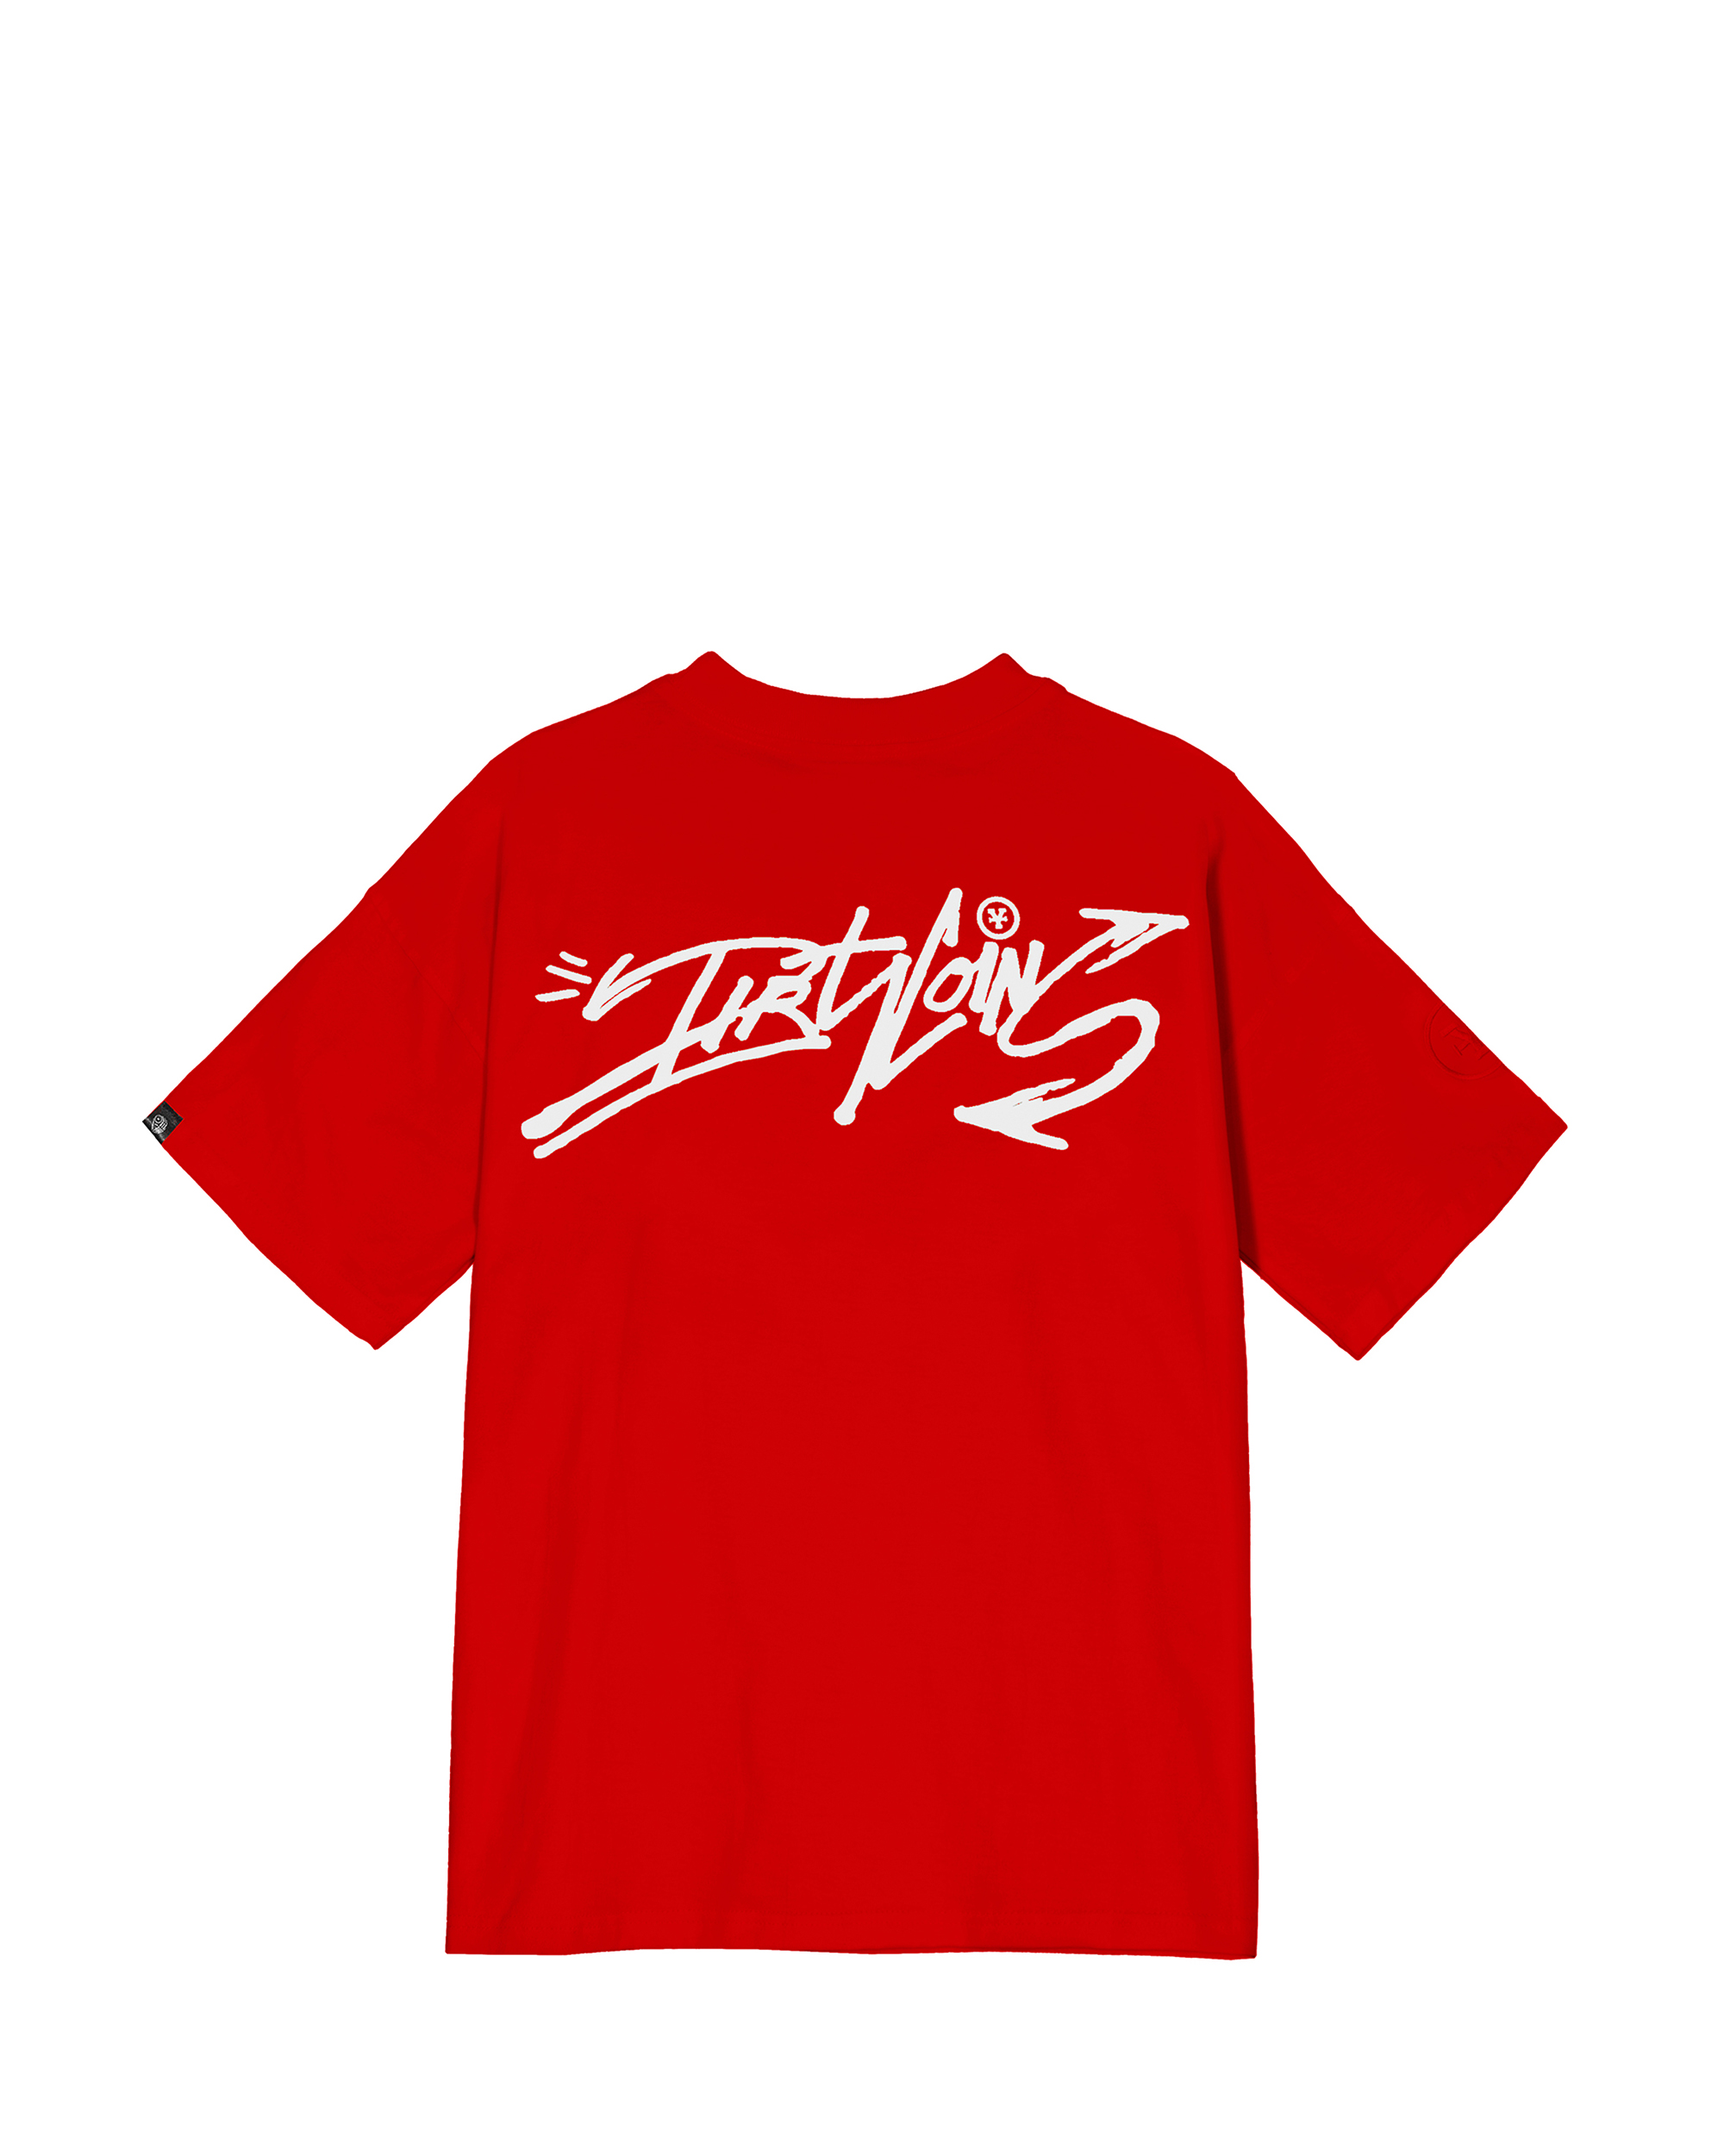 DirtyCoins Graffitee - Red